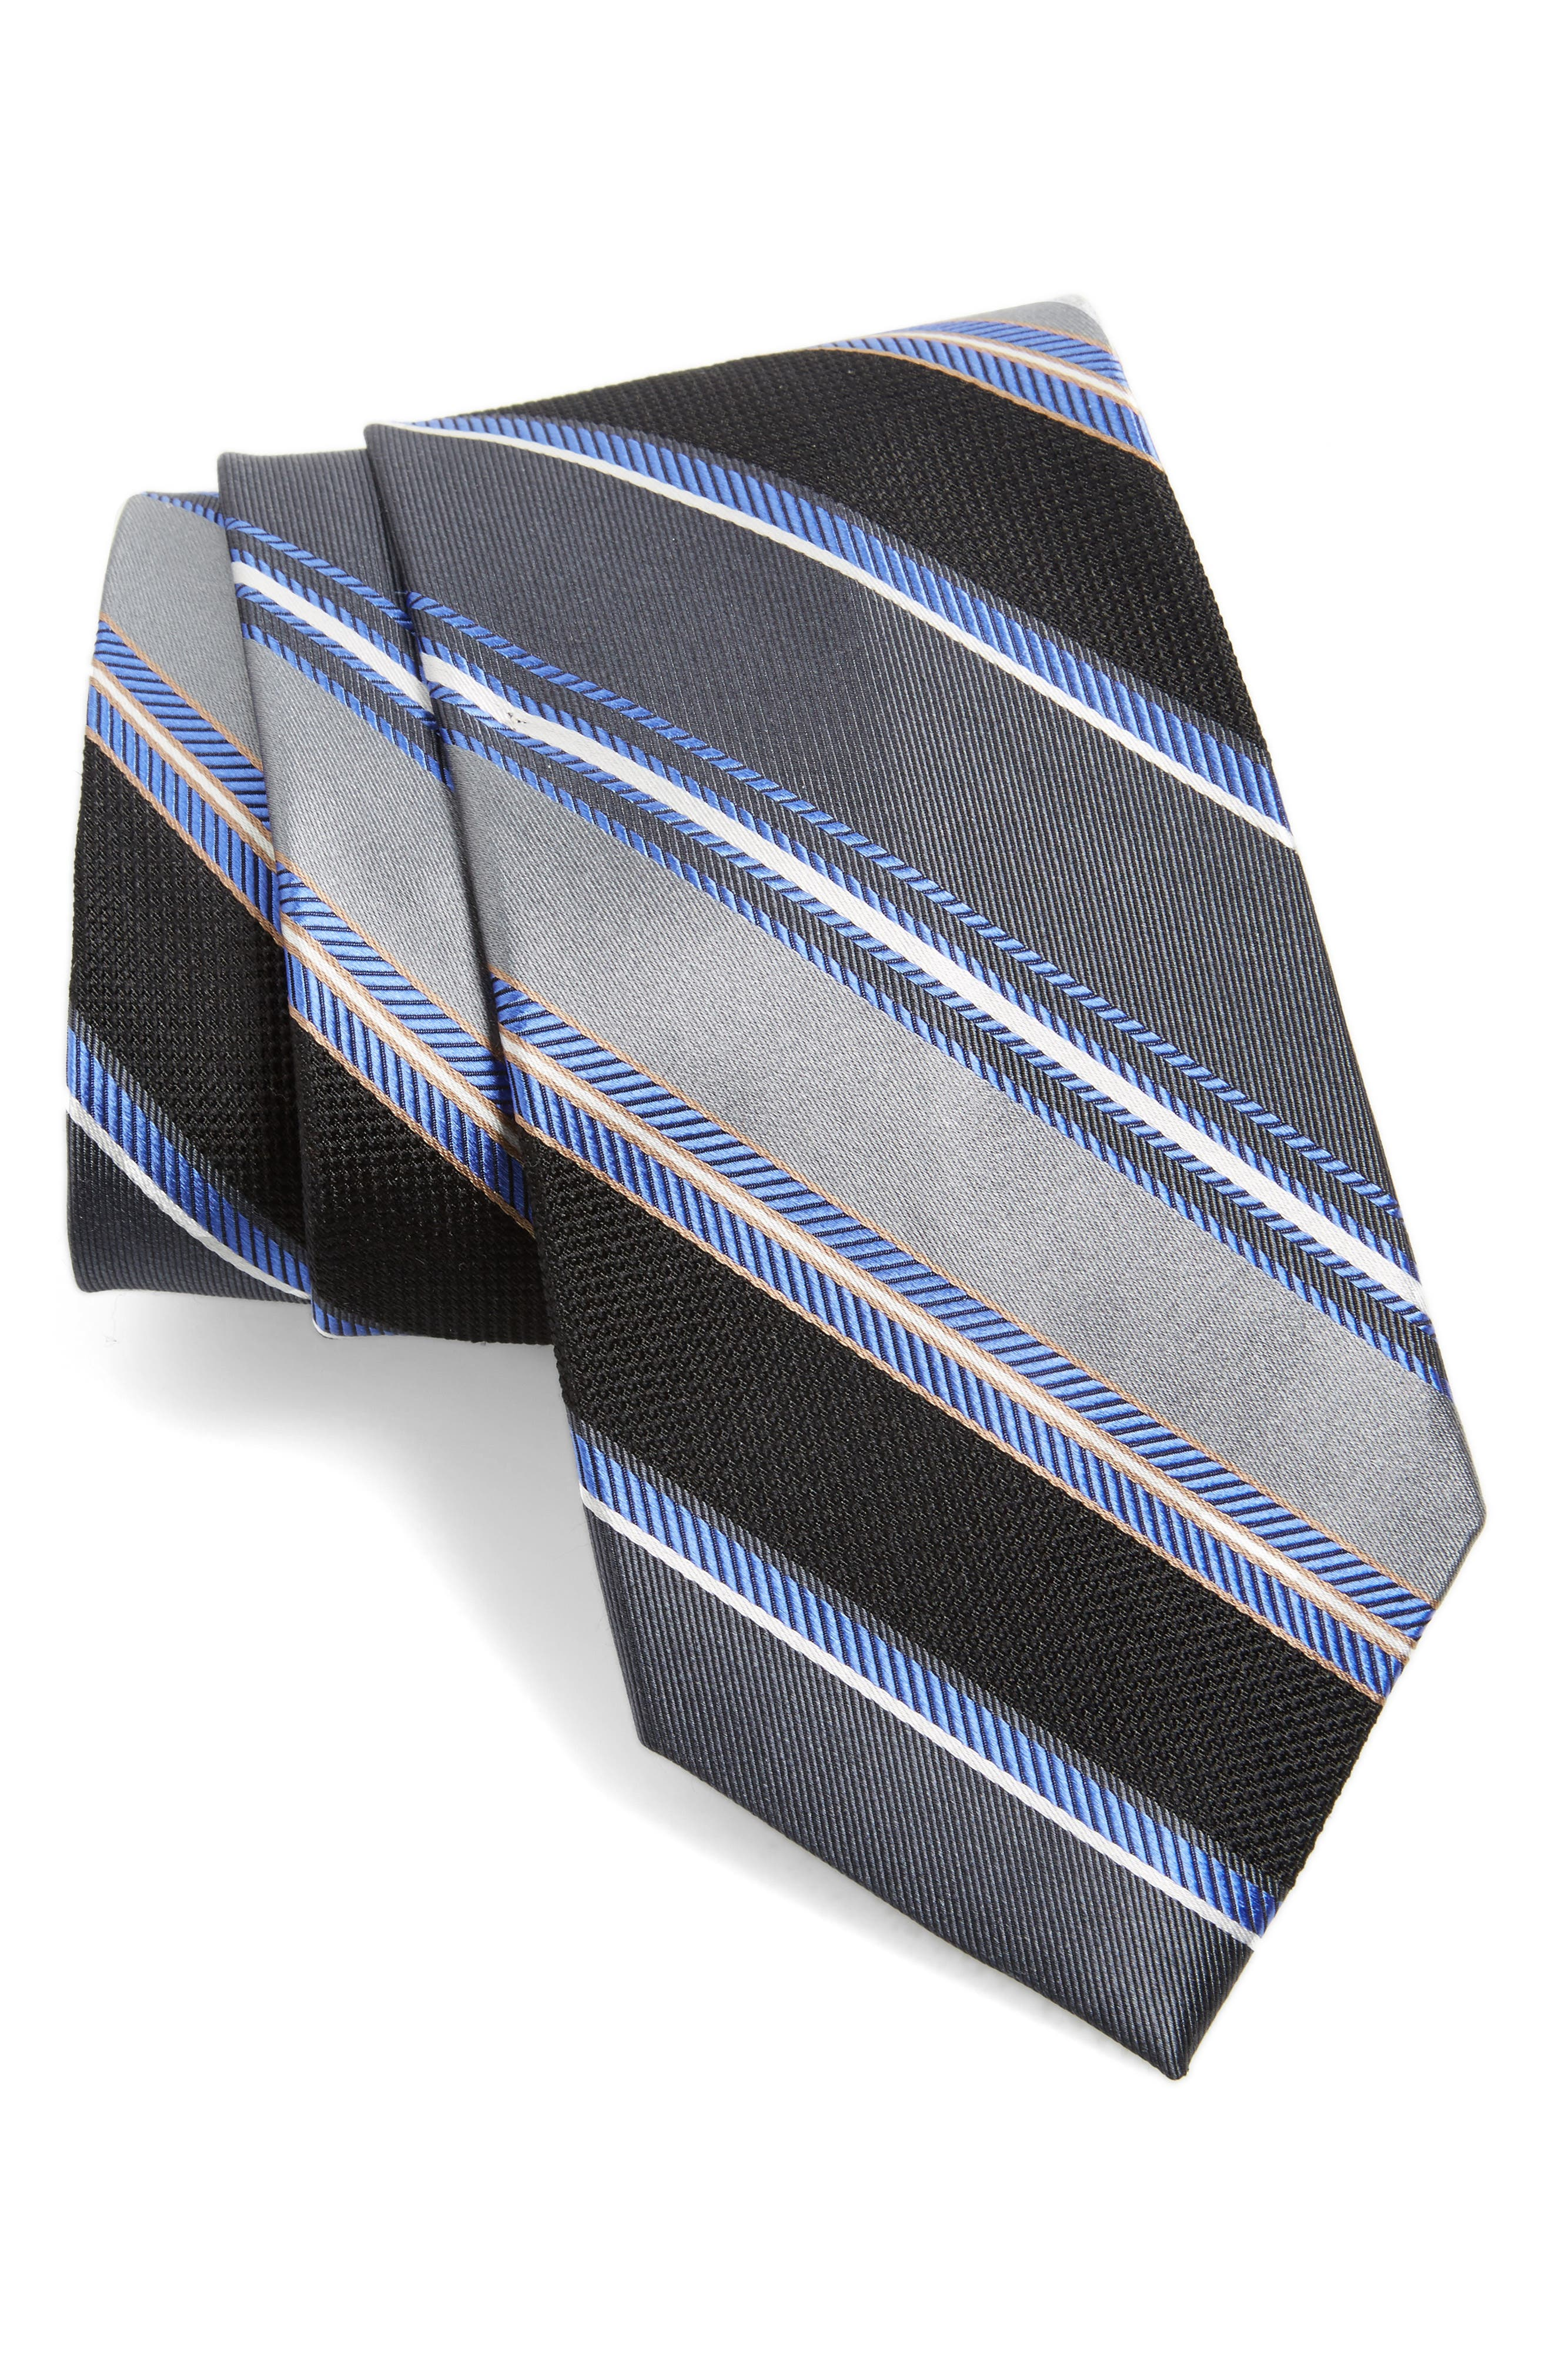 Main Image - Nordstrom Men's Shop Regal Stripe Silk Tie (X-Long)